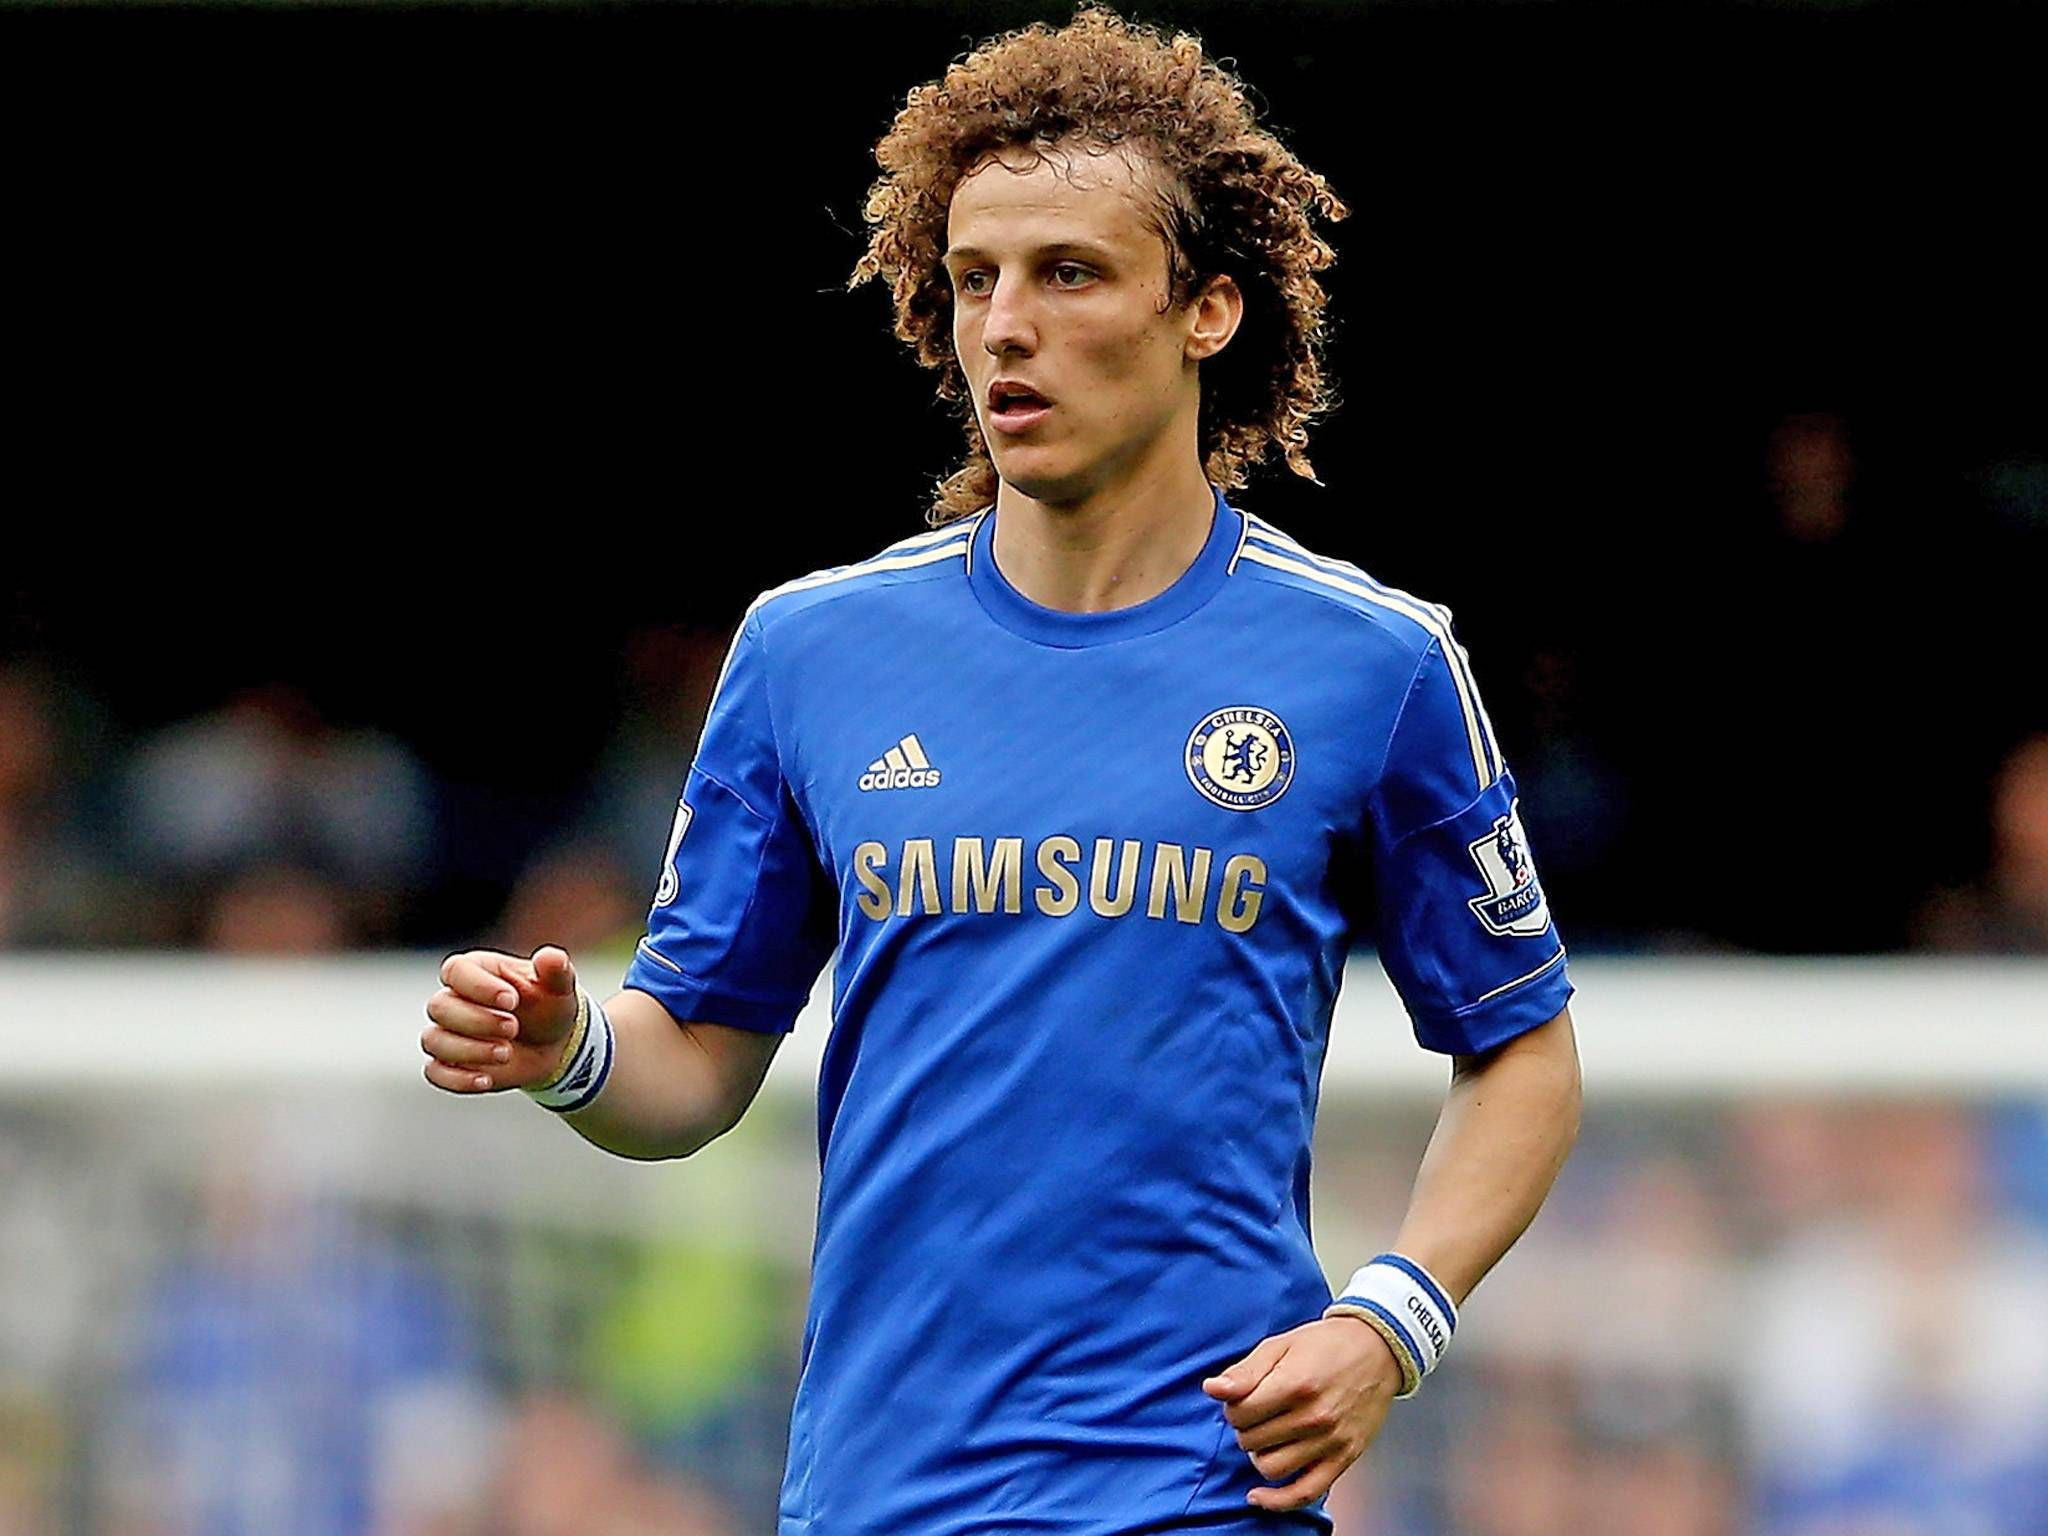 David Luiz Wallpapers : Find Best Latest David Luiz